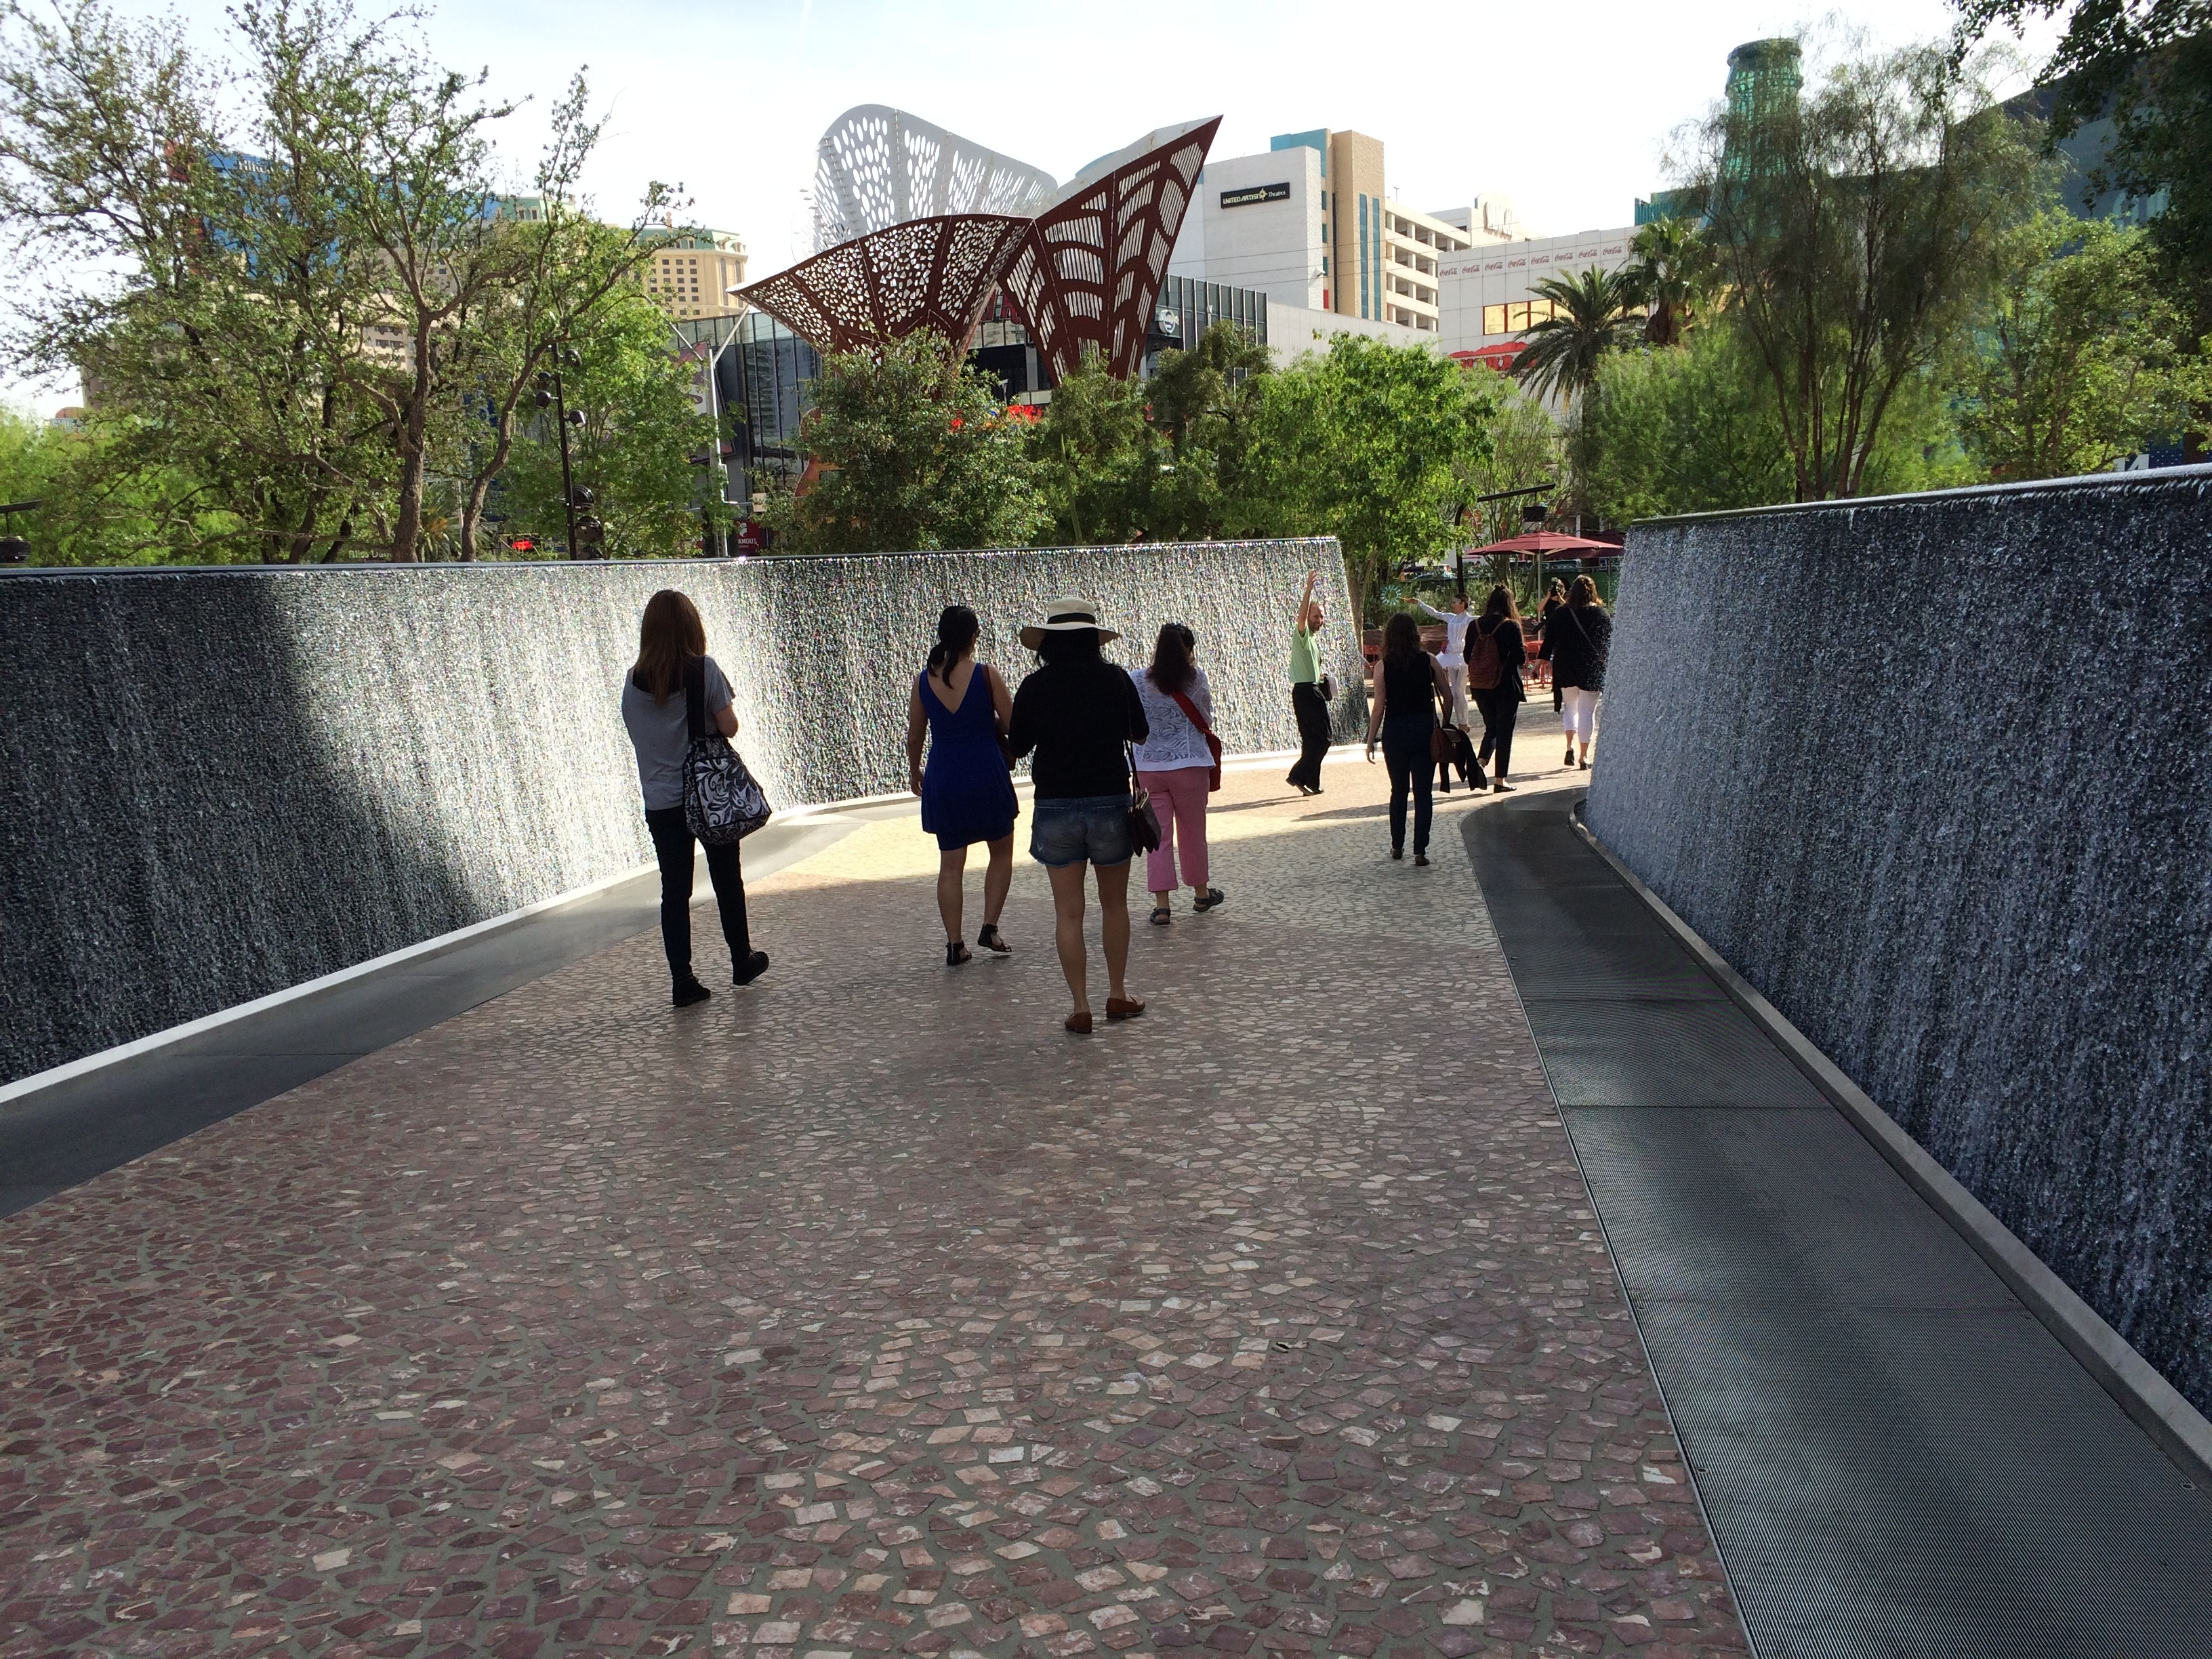 Water features like these 100-foot walls in The Park are meant to pay homage to the days when Las Vegas was a green oasis with natural bubbling springs. The flowing water creates a microclimate temperatures which can be 15 degrees to 20 degrees less than the immediate surrounding area.